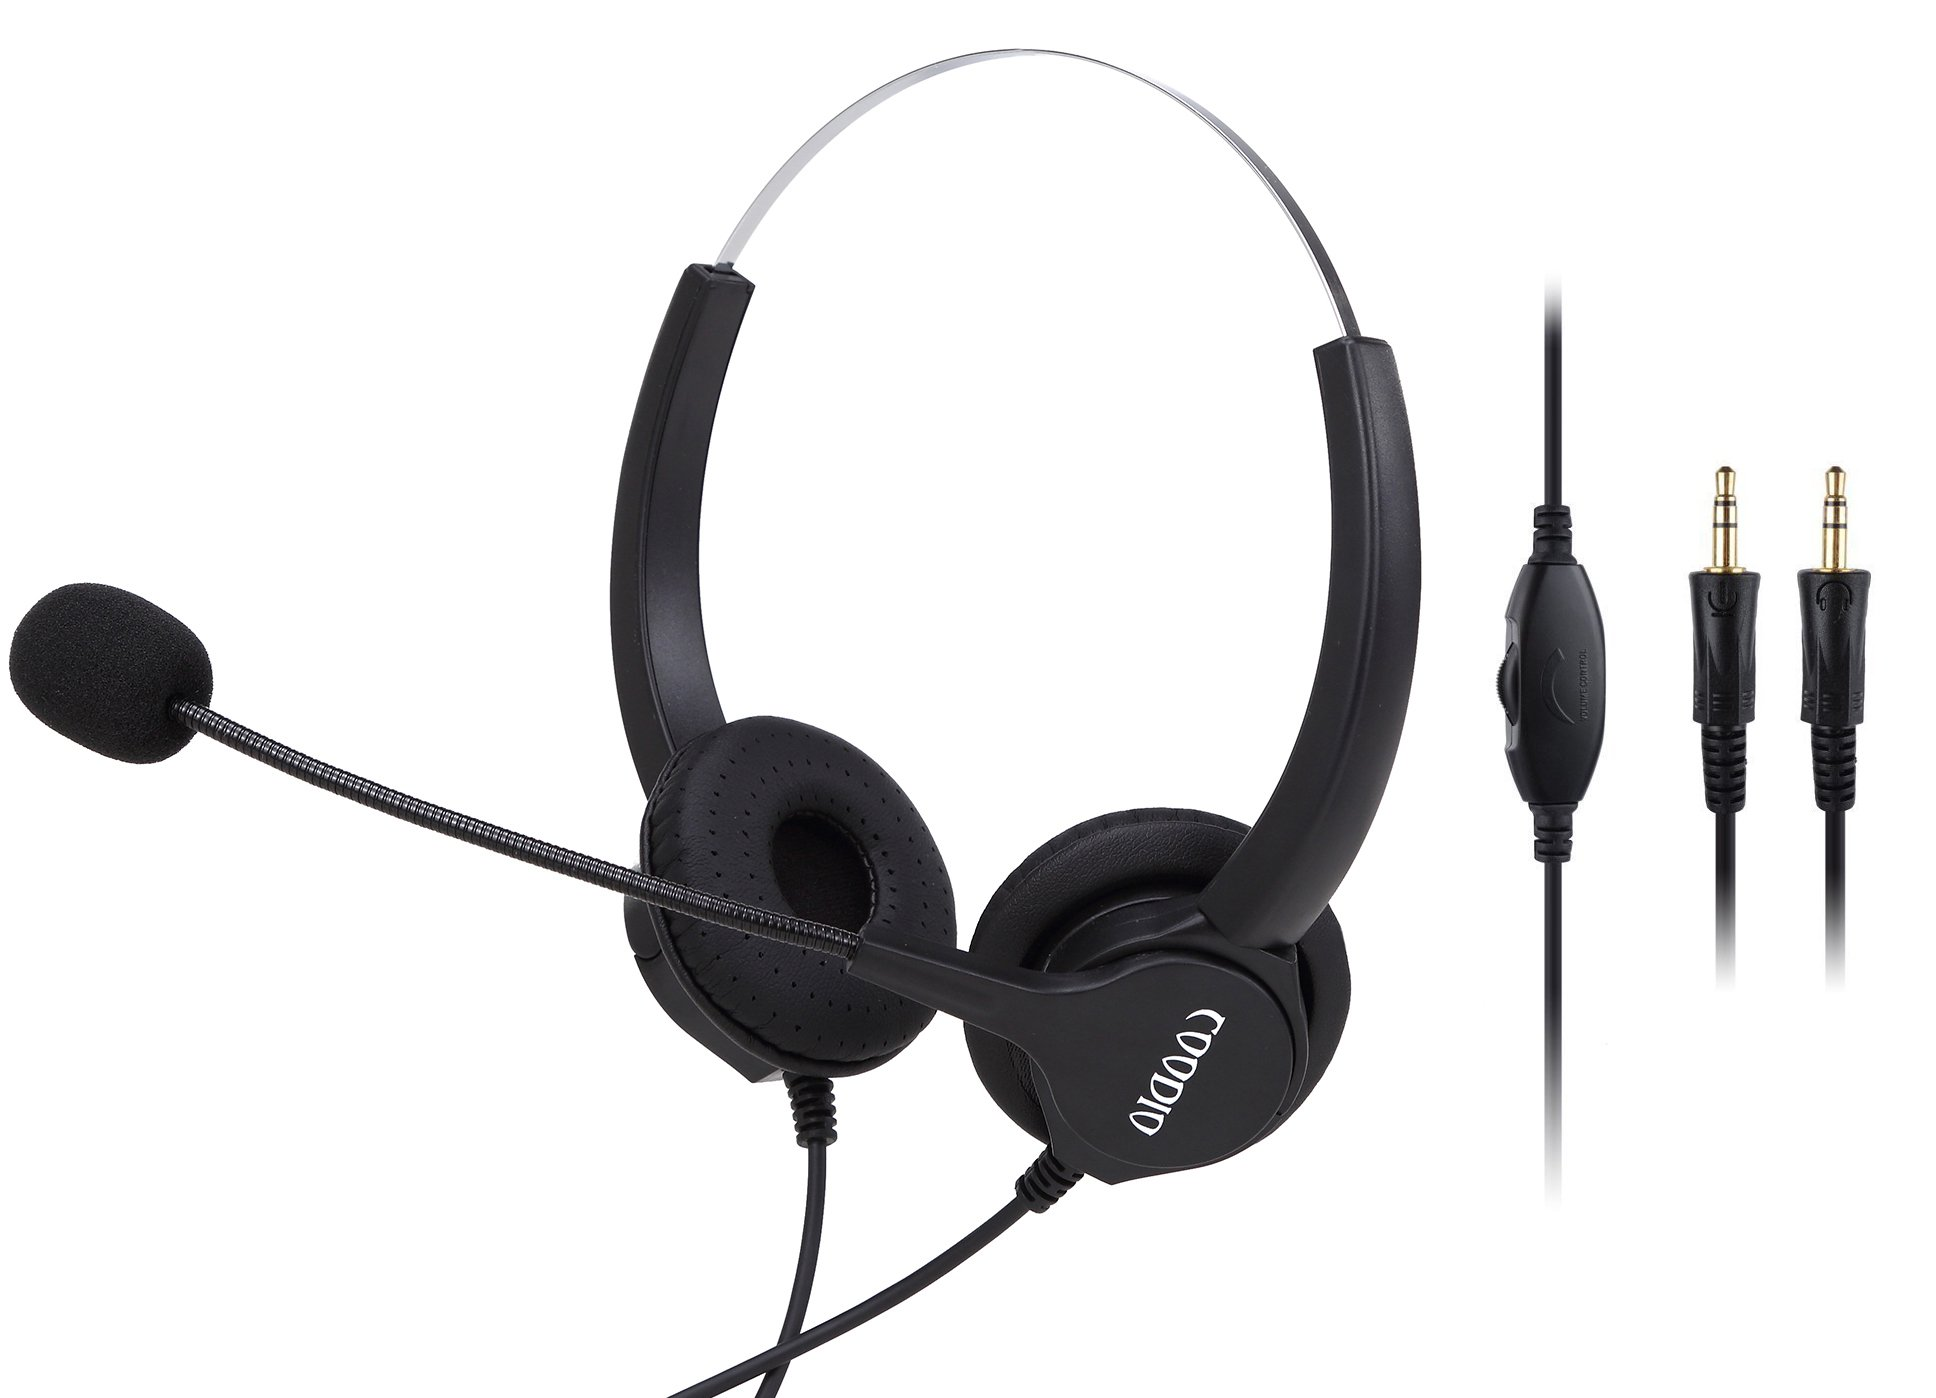 3.5mm PC VOIP Headset, Coodio 3.5mm Headphone [Volume Control] [Noise Cancelling] [Protein Earmuff] Binaural Headphone With Mic Microphone For PC Laptop Call Center Telephone Gaming Music - HS4